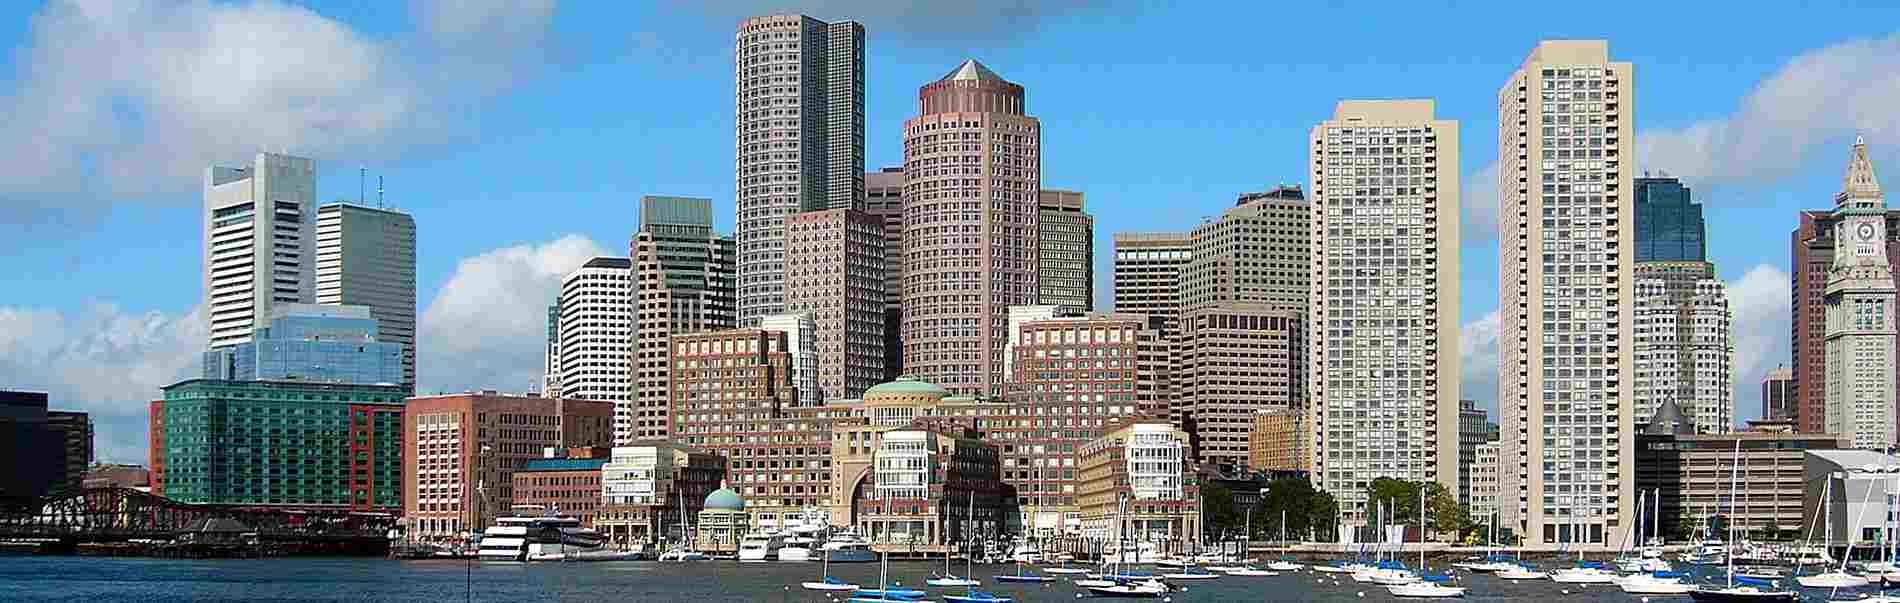 Skyline view of Boston